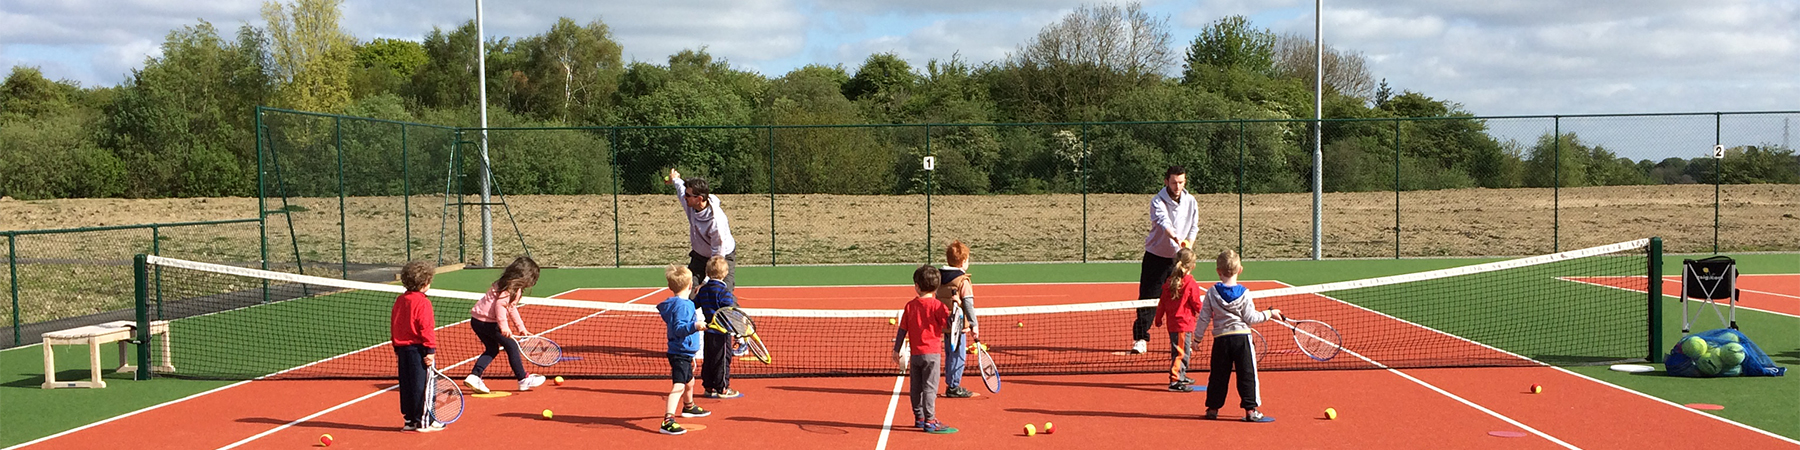 Tennis Lessons for Children